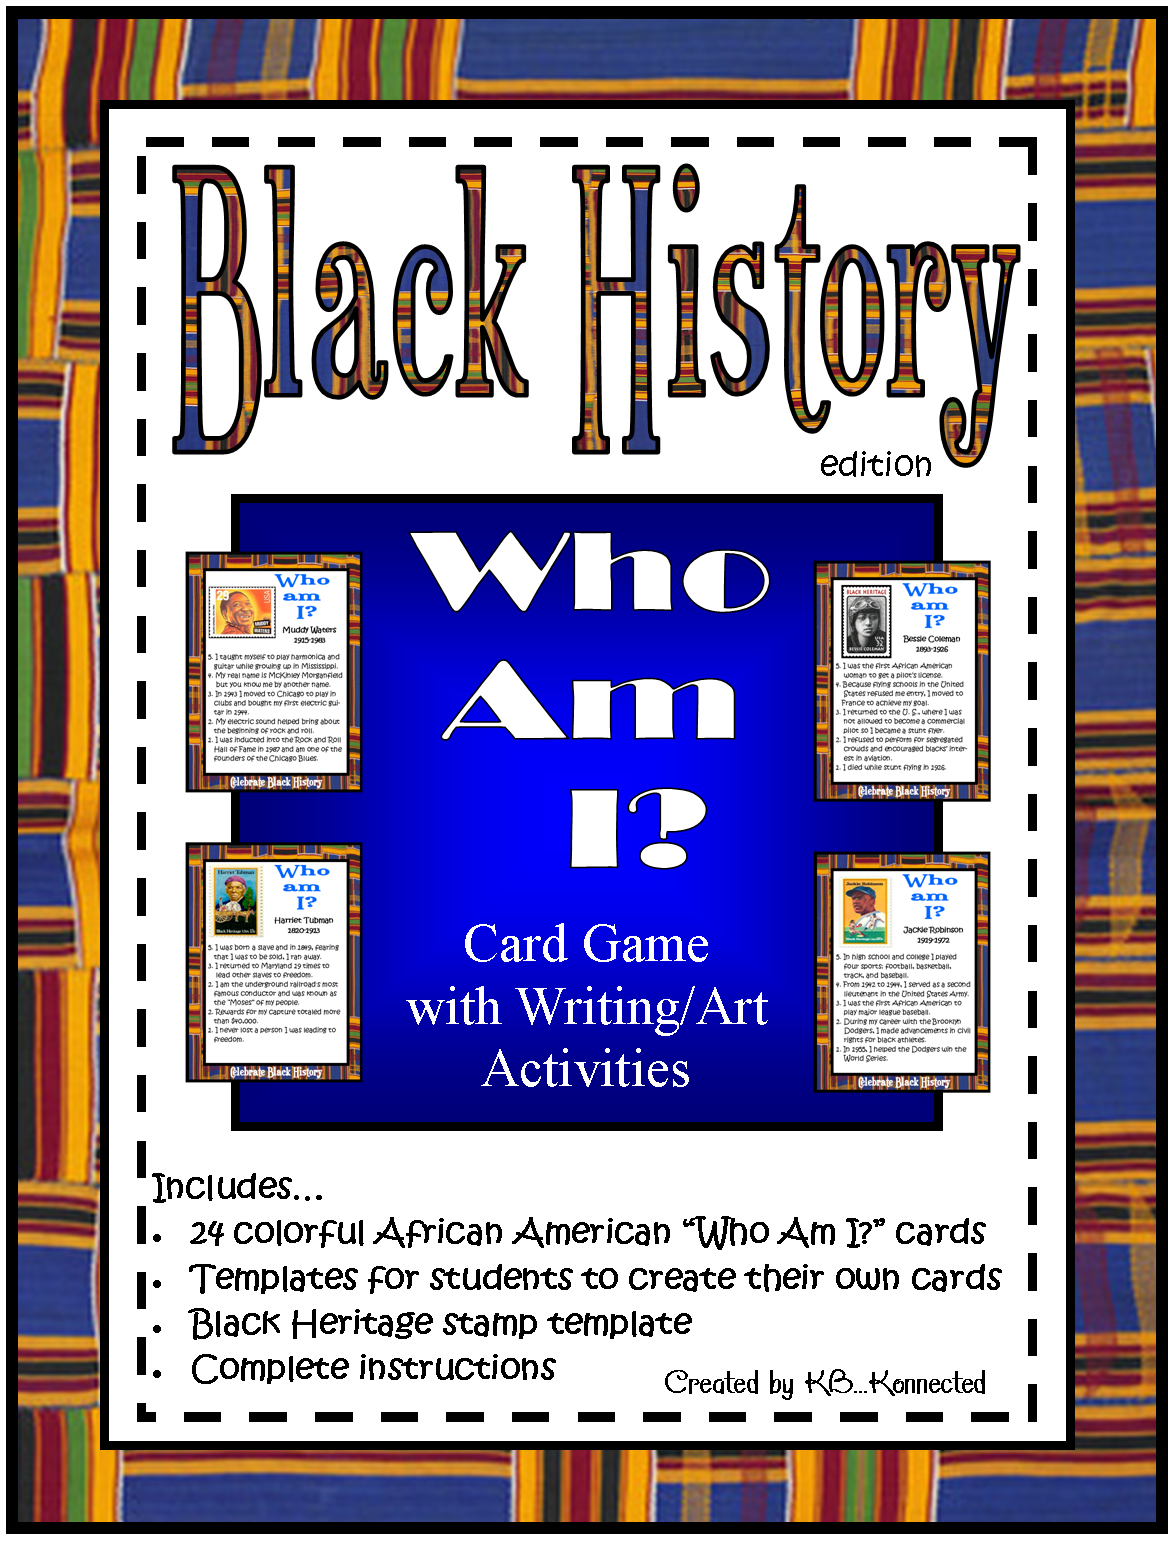 "Terrific resource for Black History Month that can be used all month long! Plus two FREEBIES! #elemchat #spedchat #sschat #blackhistory Every year I am on the lookout for activities to help celebrate Black History Month in the classroom. This year I decided to create my own and I want to share them with you. I created 24 ""Who Am I?"" cards featuring African Americans, 11 women and 13 men, that can be played as a game or just enjoyed as fact cards. The cards are bright and attractive and include an African kente cloth border, image of each individual and 5 interesting facts.  The game can be played by 2 or more players. Students are given clues and the sooner they guess correctly the more points they earn. The game can be played daily, starting with a few cards and adding more as you go along. Soon you will be able to play with all the cards and students will be answering quickly.I also added a template (2 sizes, color/b/w) so students can create their own ""Who Am I?"" card. Once they have chosen their subject they will need to add facts to their card. It's not numbered so you can choose how many they add. You can add these to the game or even a bulletin board. Or if you prefer they could write a mini-bio of the African American they chose. The template is perfect for either.…and because I used U.S.postage stamps for this packet I also included a template for students to create their own Black Heritage stamp. The U.S. post office allows stamps to be used freely for educational purposes.Laminate the ""Who Am I?"" cards and your students will enjoy them for years to come! Includes24 colorful African American ""Who Am I?"" cards (3 1/2 x 5)Templates for students to create their own cards(color and b/w) aprox. 5x7 and 7x9Black Heritage stamp templateComplete instructions Below are two of the 24 cards    Below are two freebies from my ""Who Am I?""…Black History Edition. Students will enjoy creating their own Black Heritage stamps just like the U.S. Post Office. Hope that you can use them. :-)      Hope you stop by my TpT store and check them out."